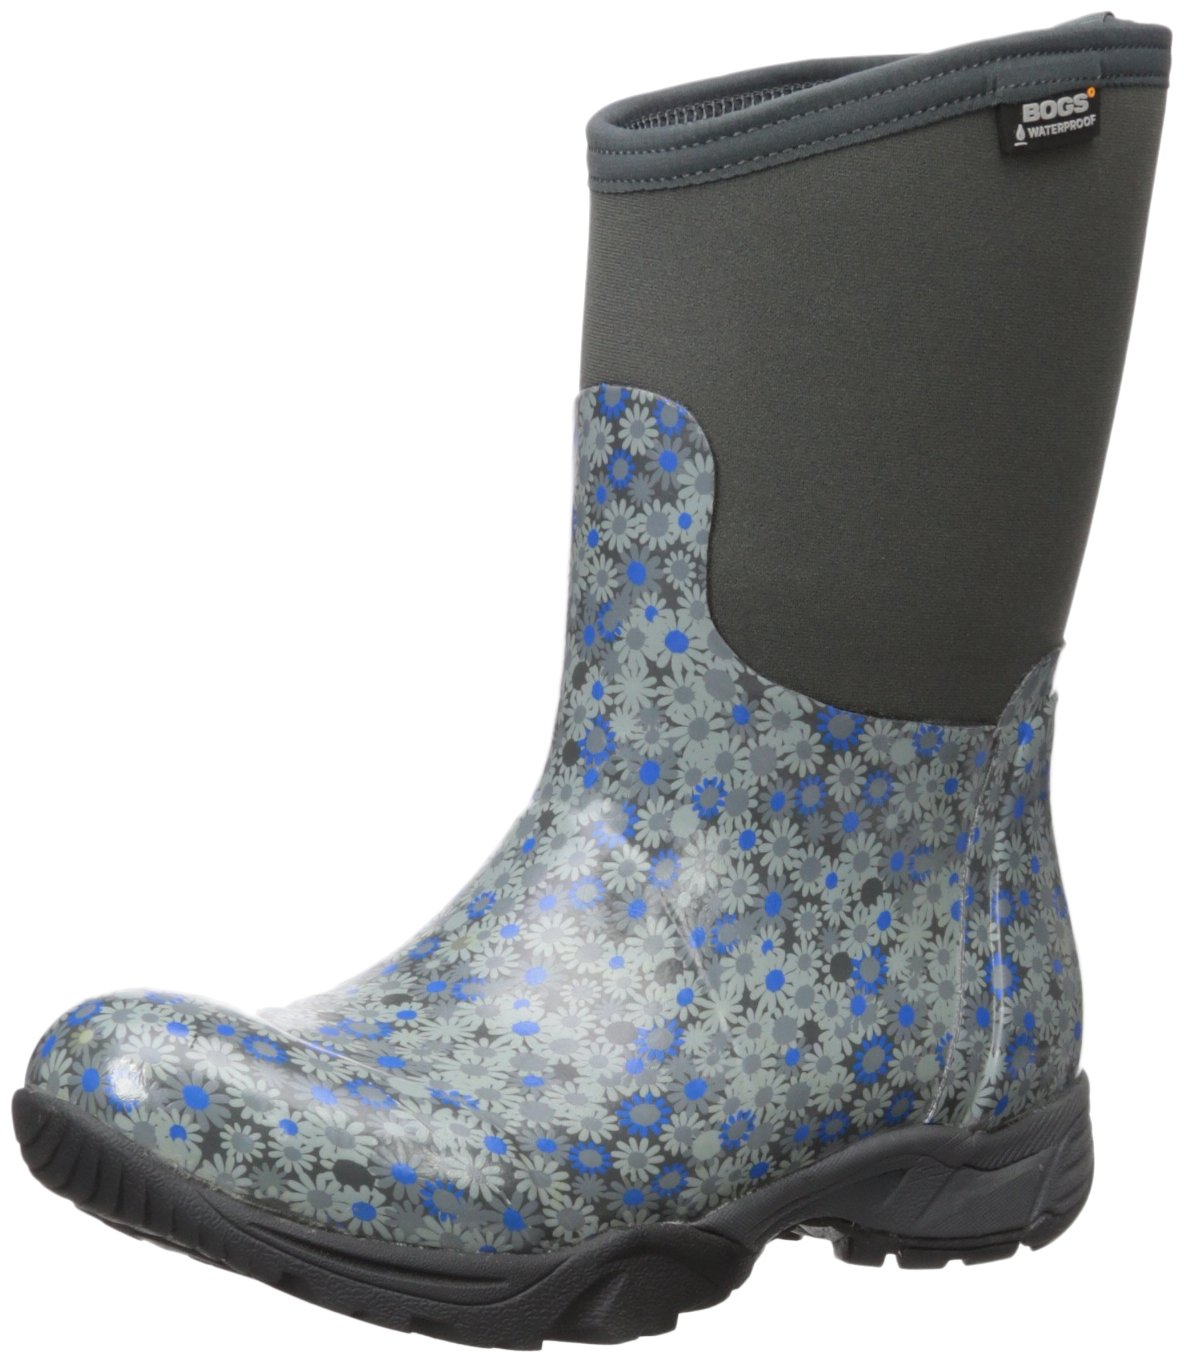 Bogs Women's Daisy Multiflower Work Boot, Dark Gray Multi, 9 M US by Bogs